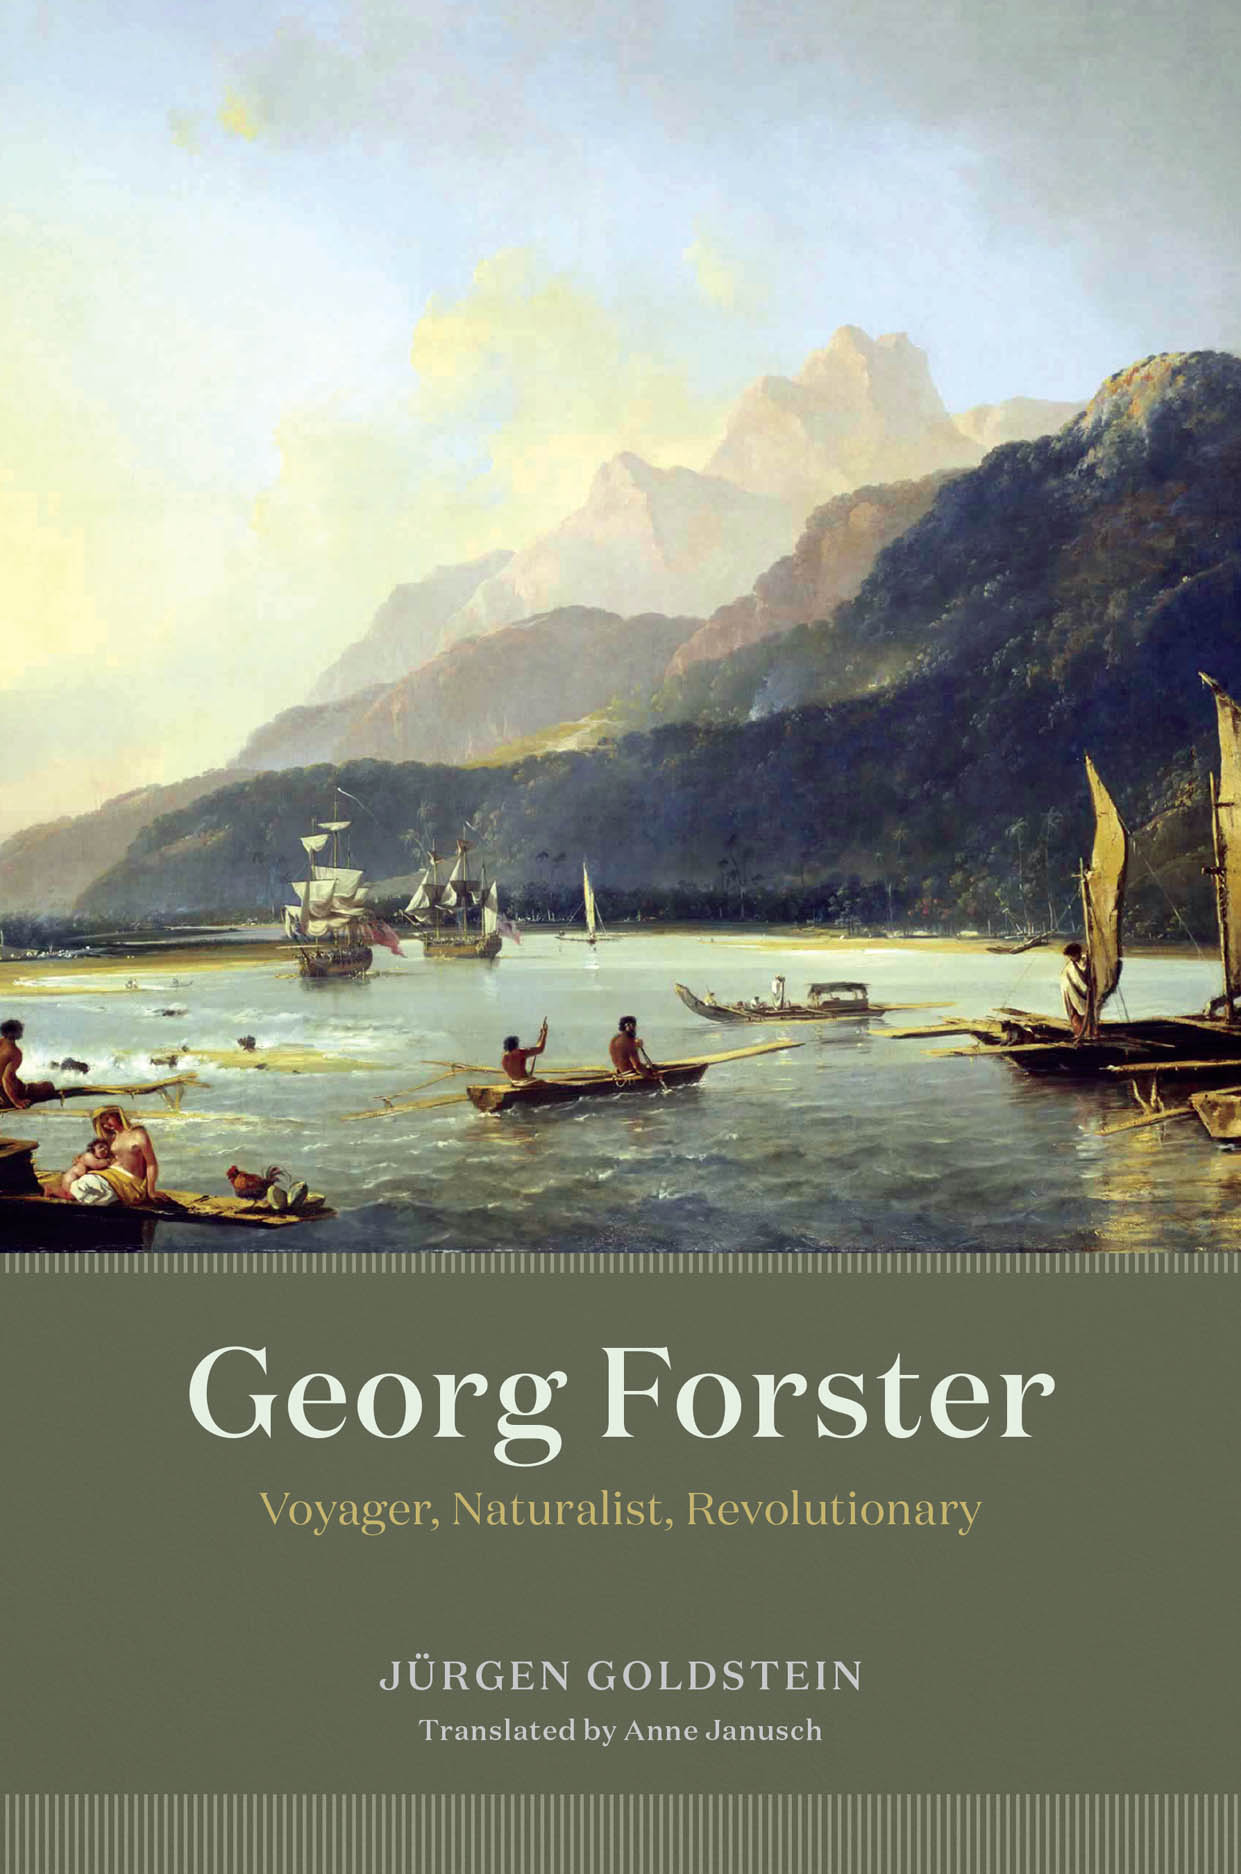 Georg Forster: Voyager, Naturalist, Revolutionary